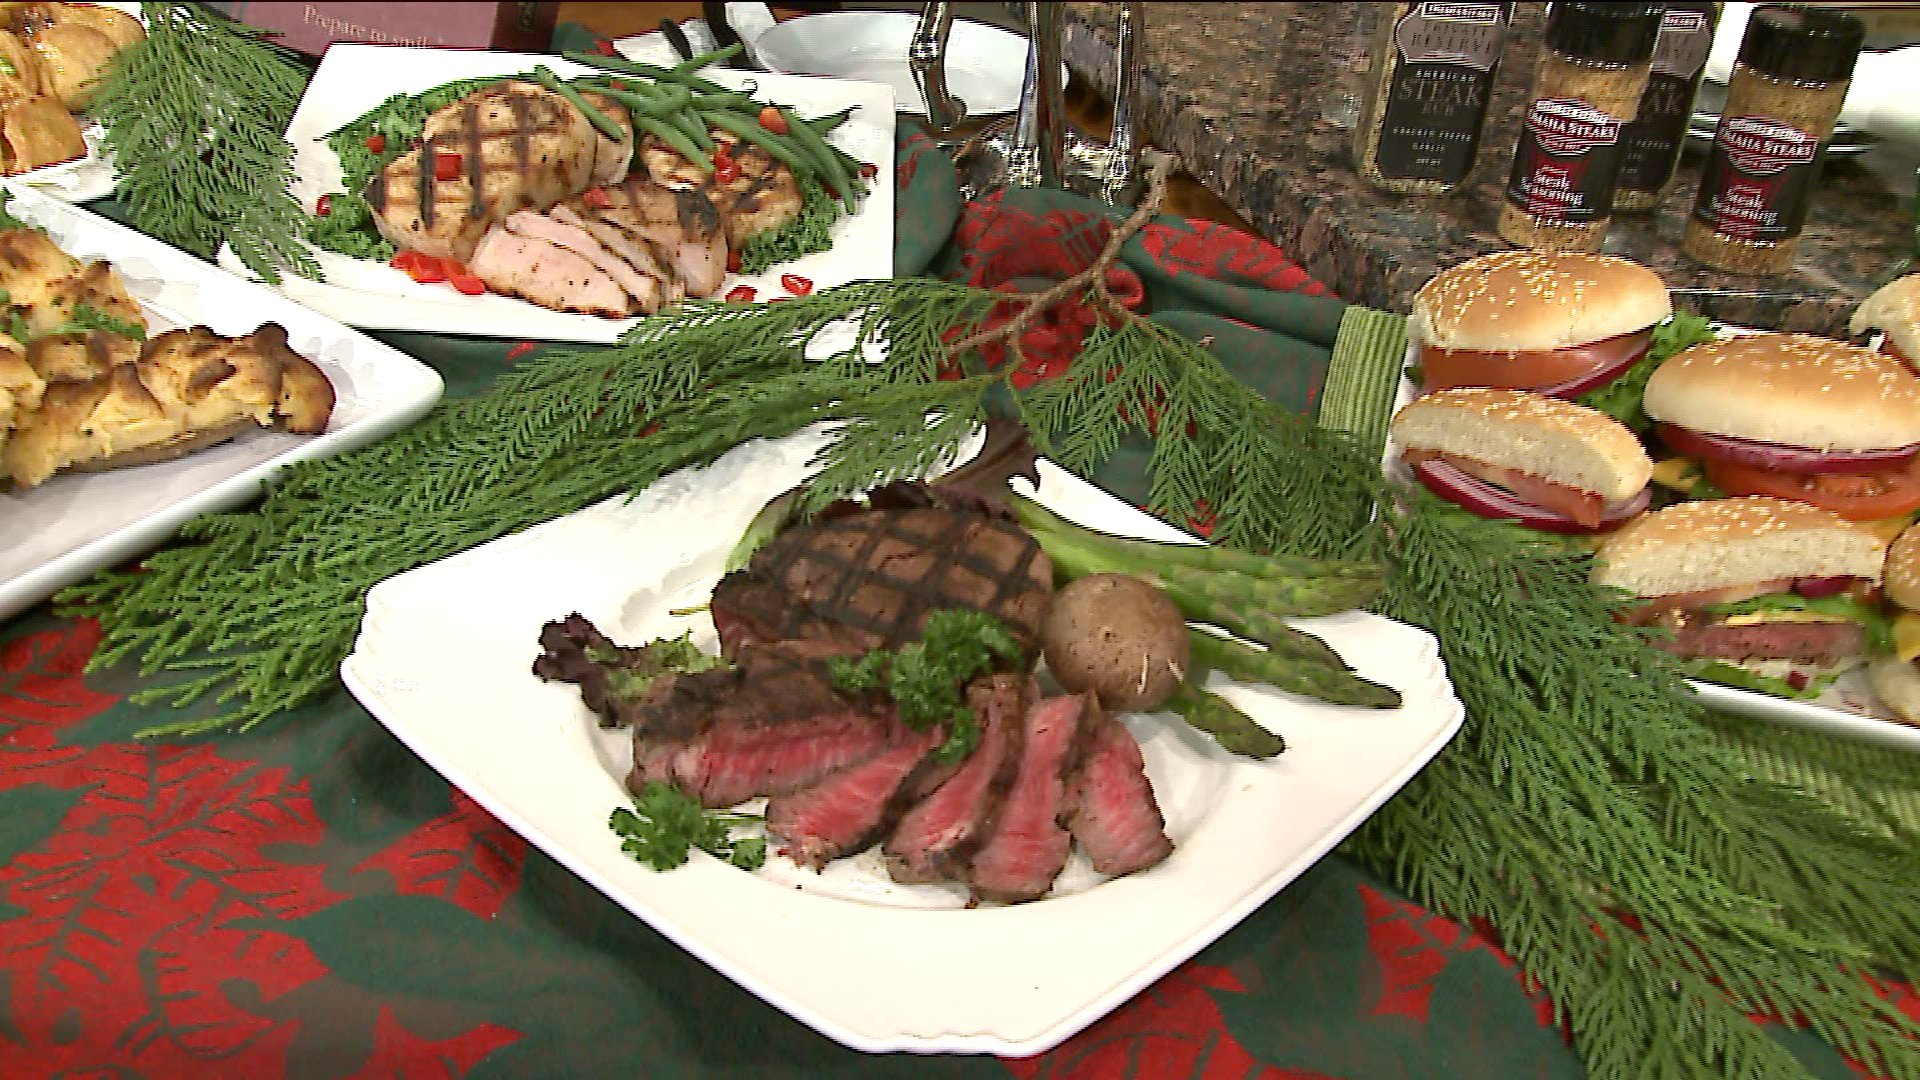 How to Grill Great Holiday Meals Without Going Outside